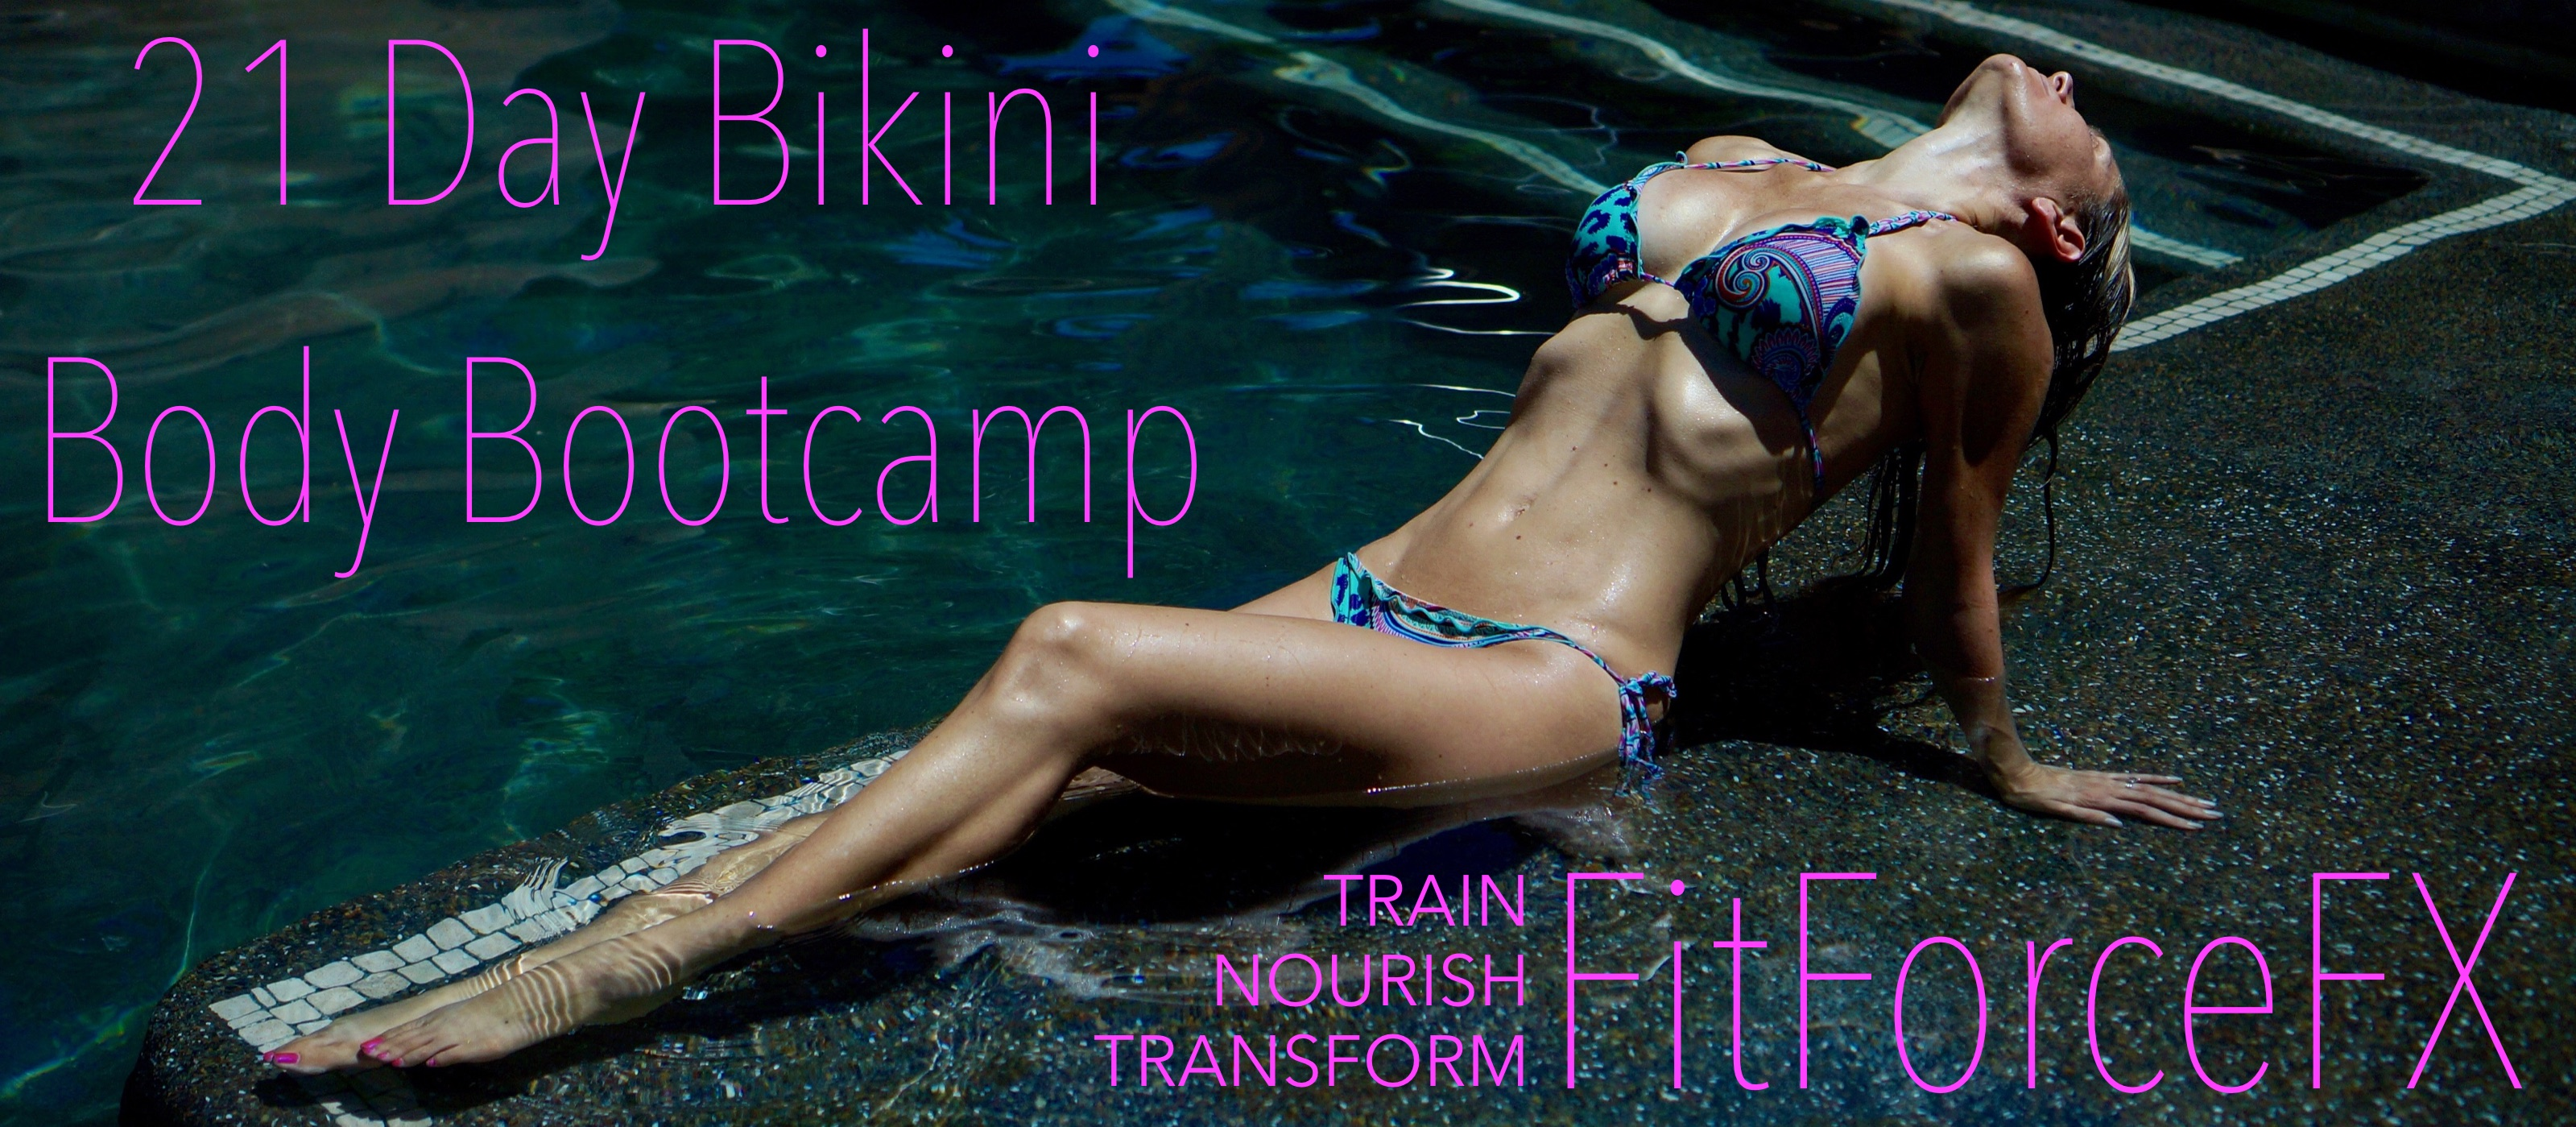 21 Day Bikini Body Bootcamp • Week 3